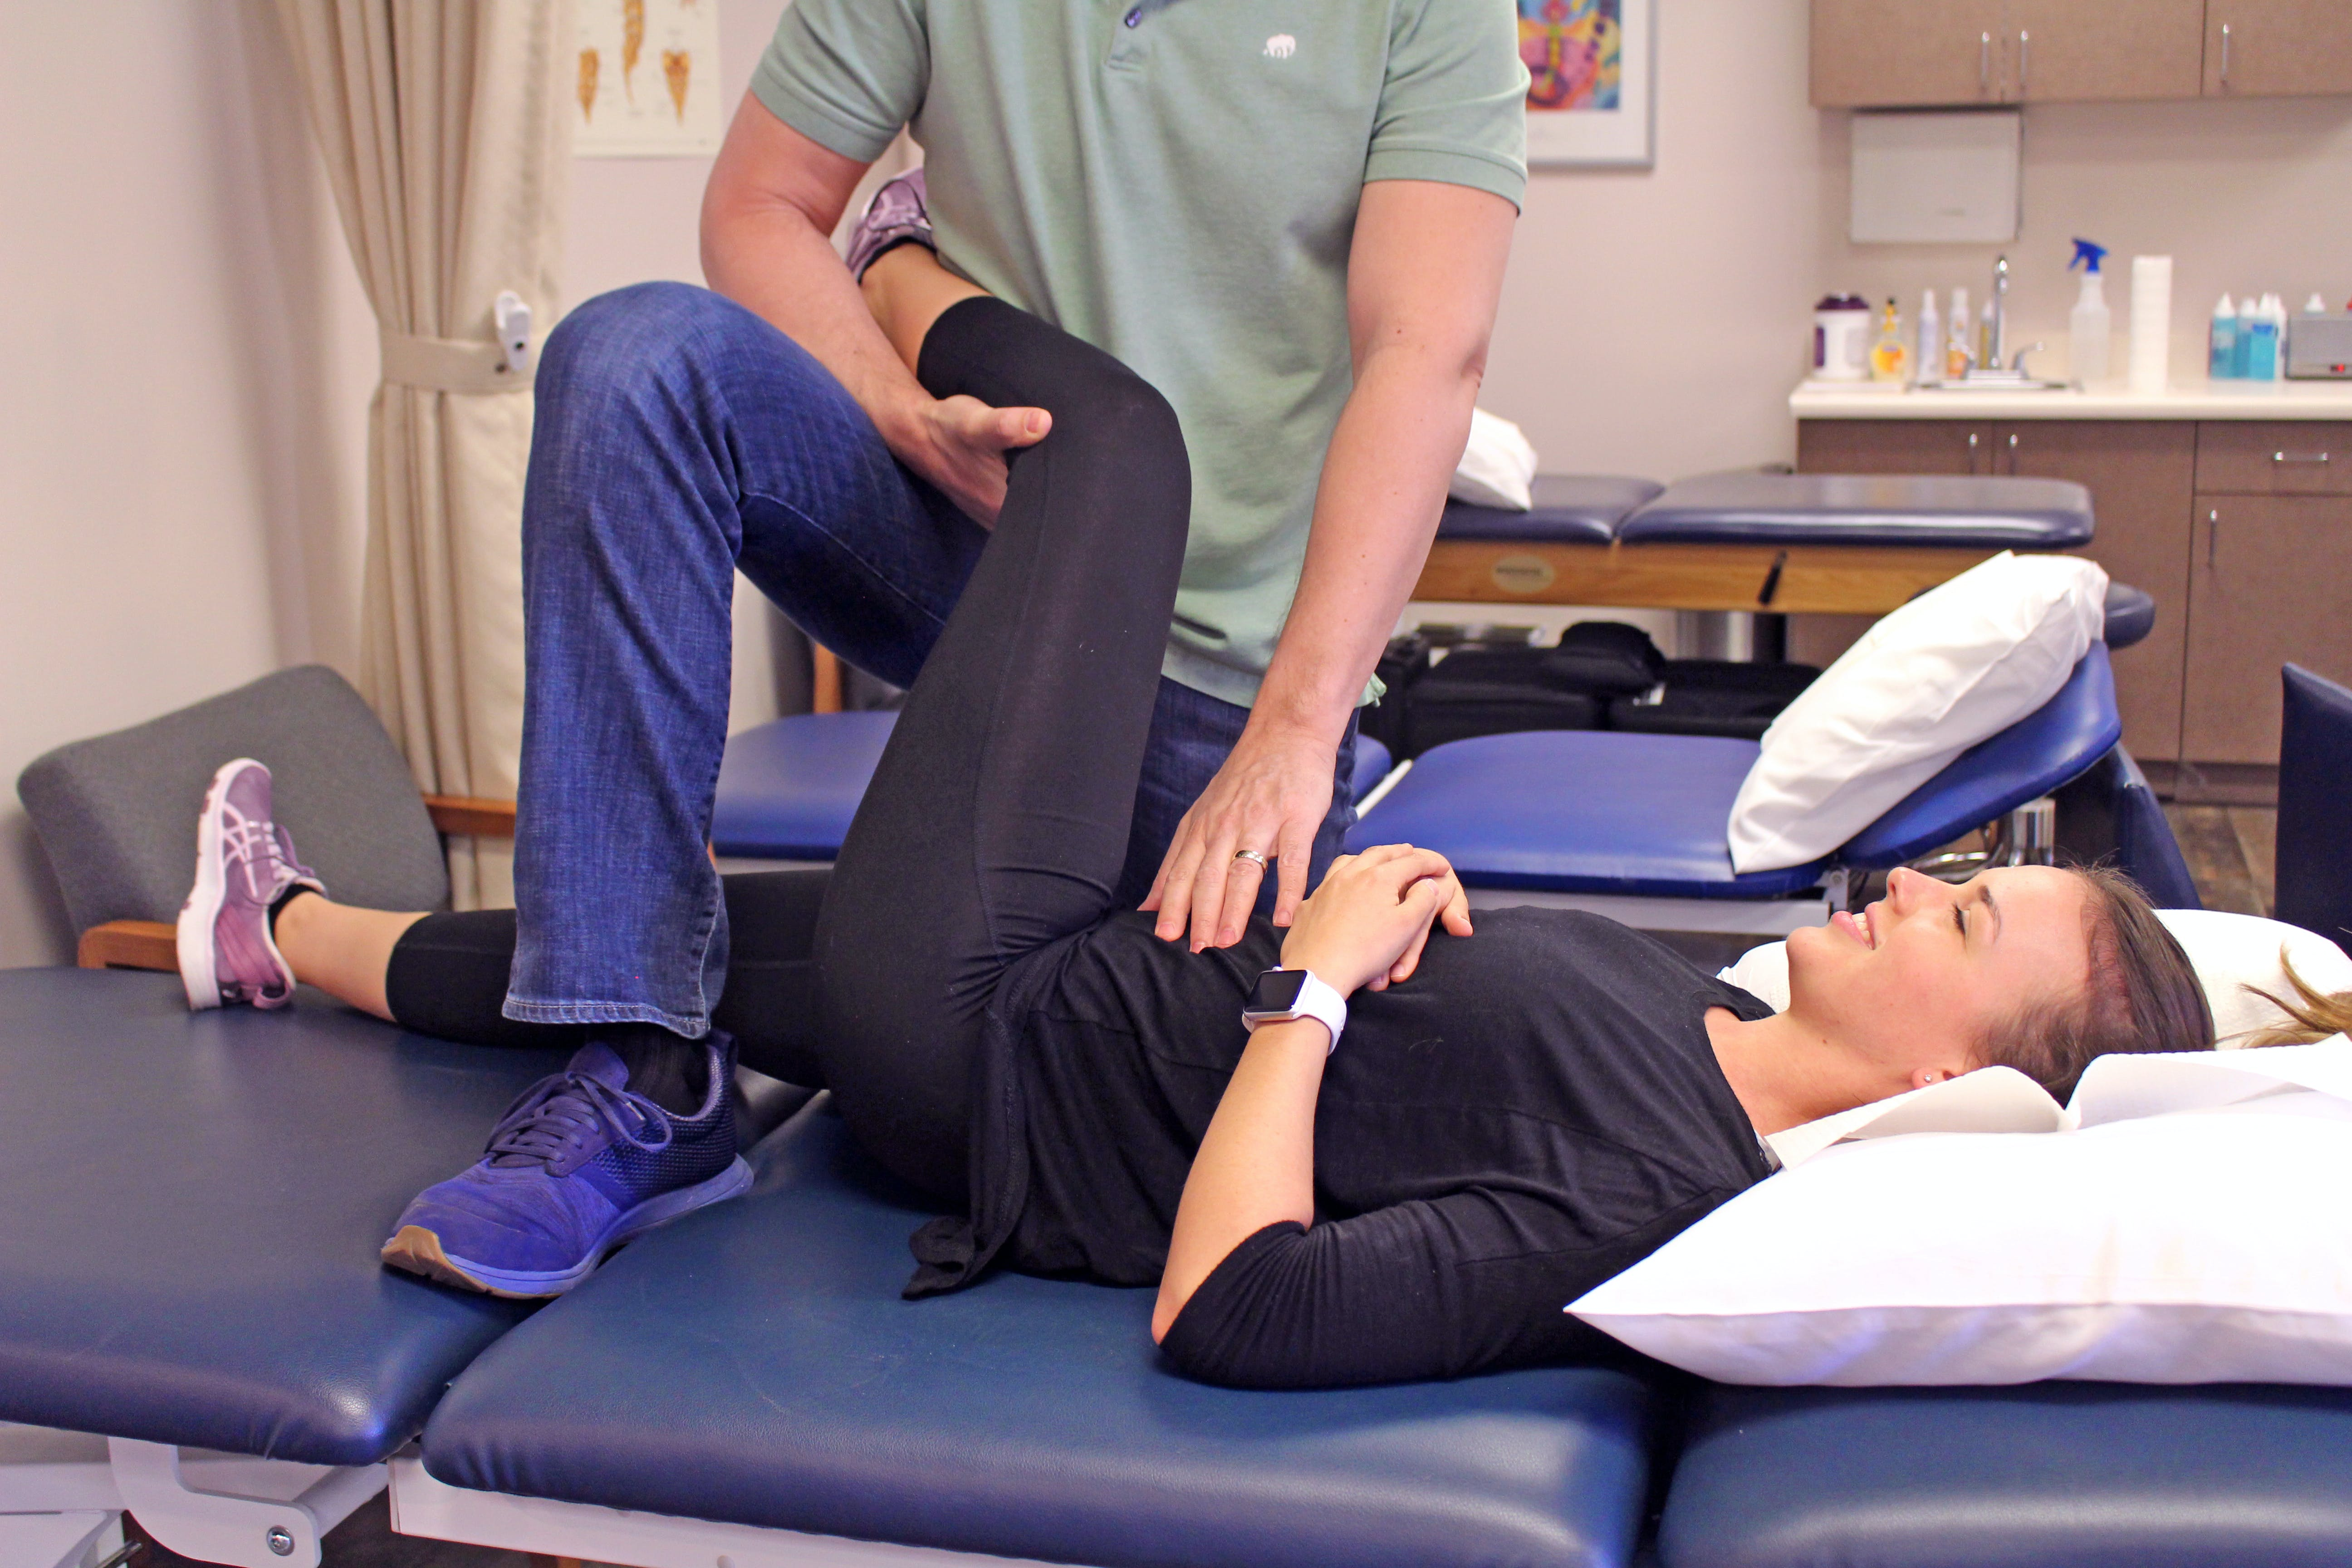 Definition of physical therapy - Specific Goals Defined Programs And Careful Session Monitoring Integrate The Right Set Of Manual Therapy Techniques With Exercise And Modalities For